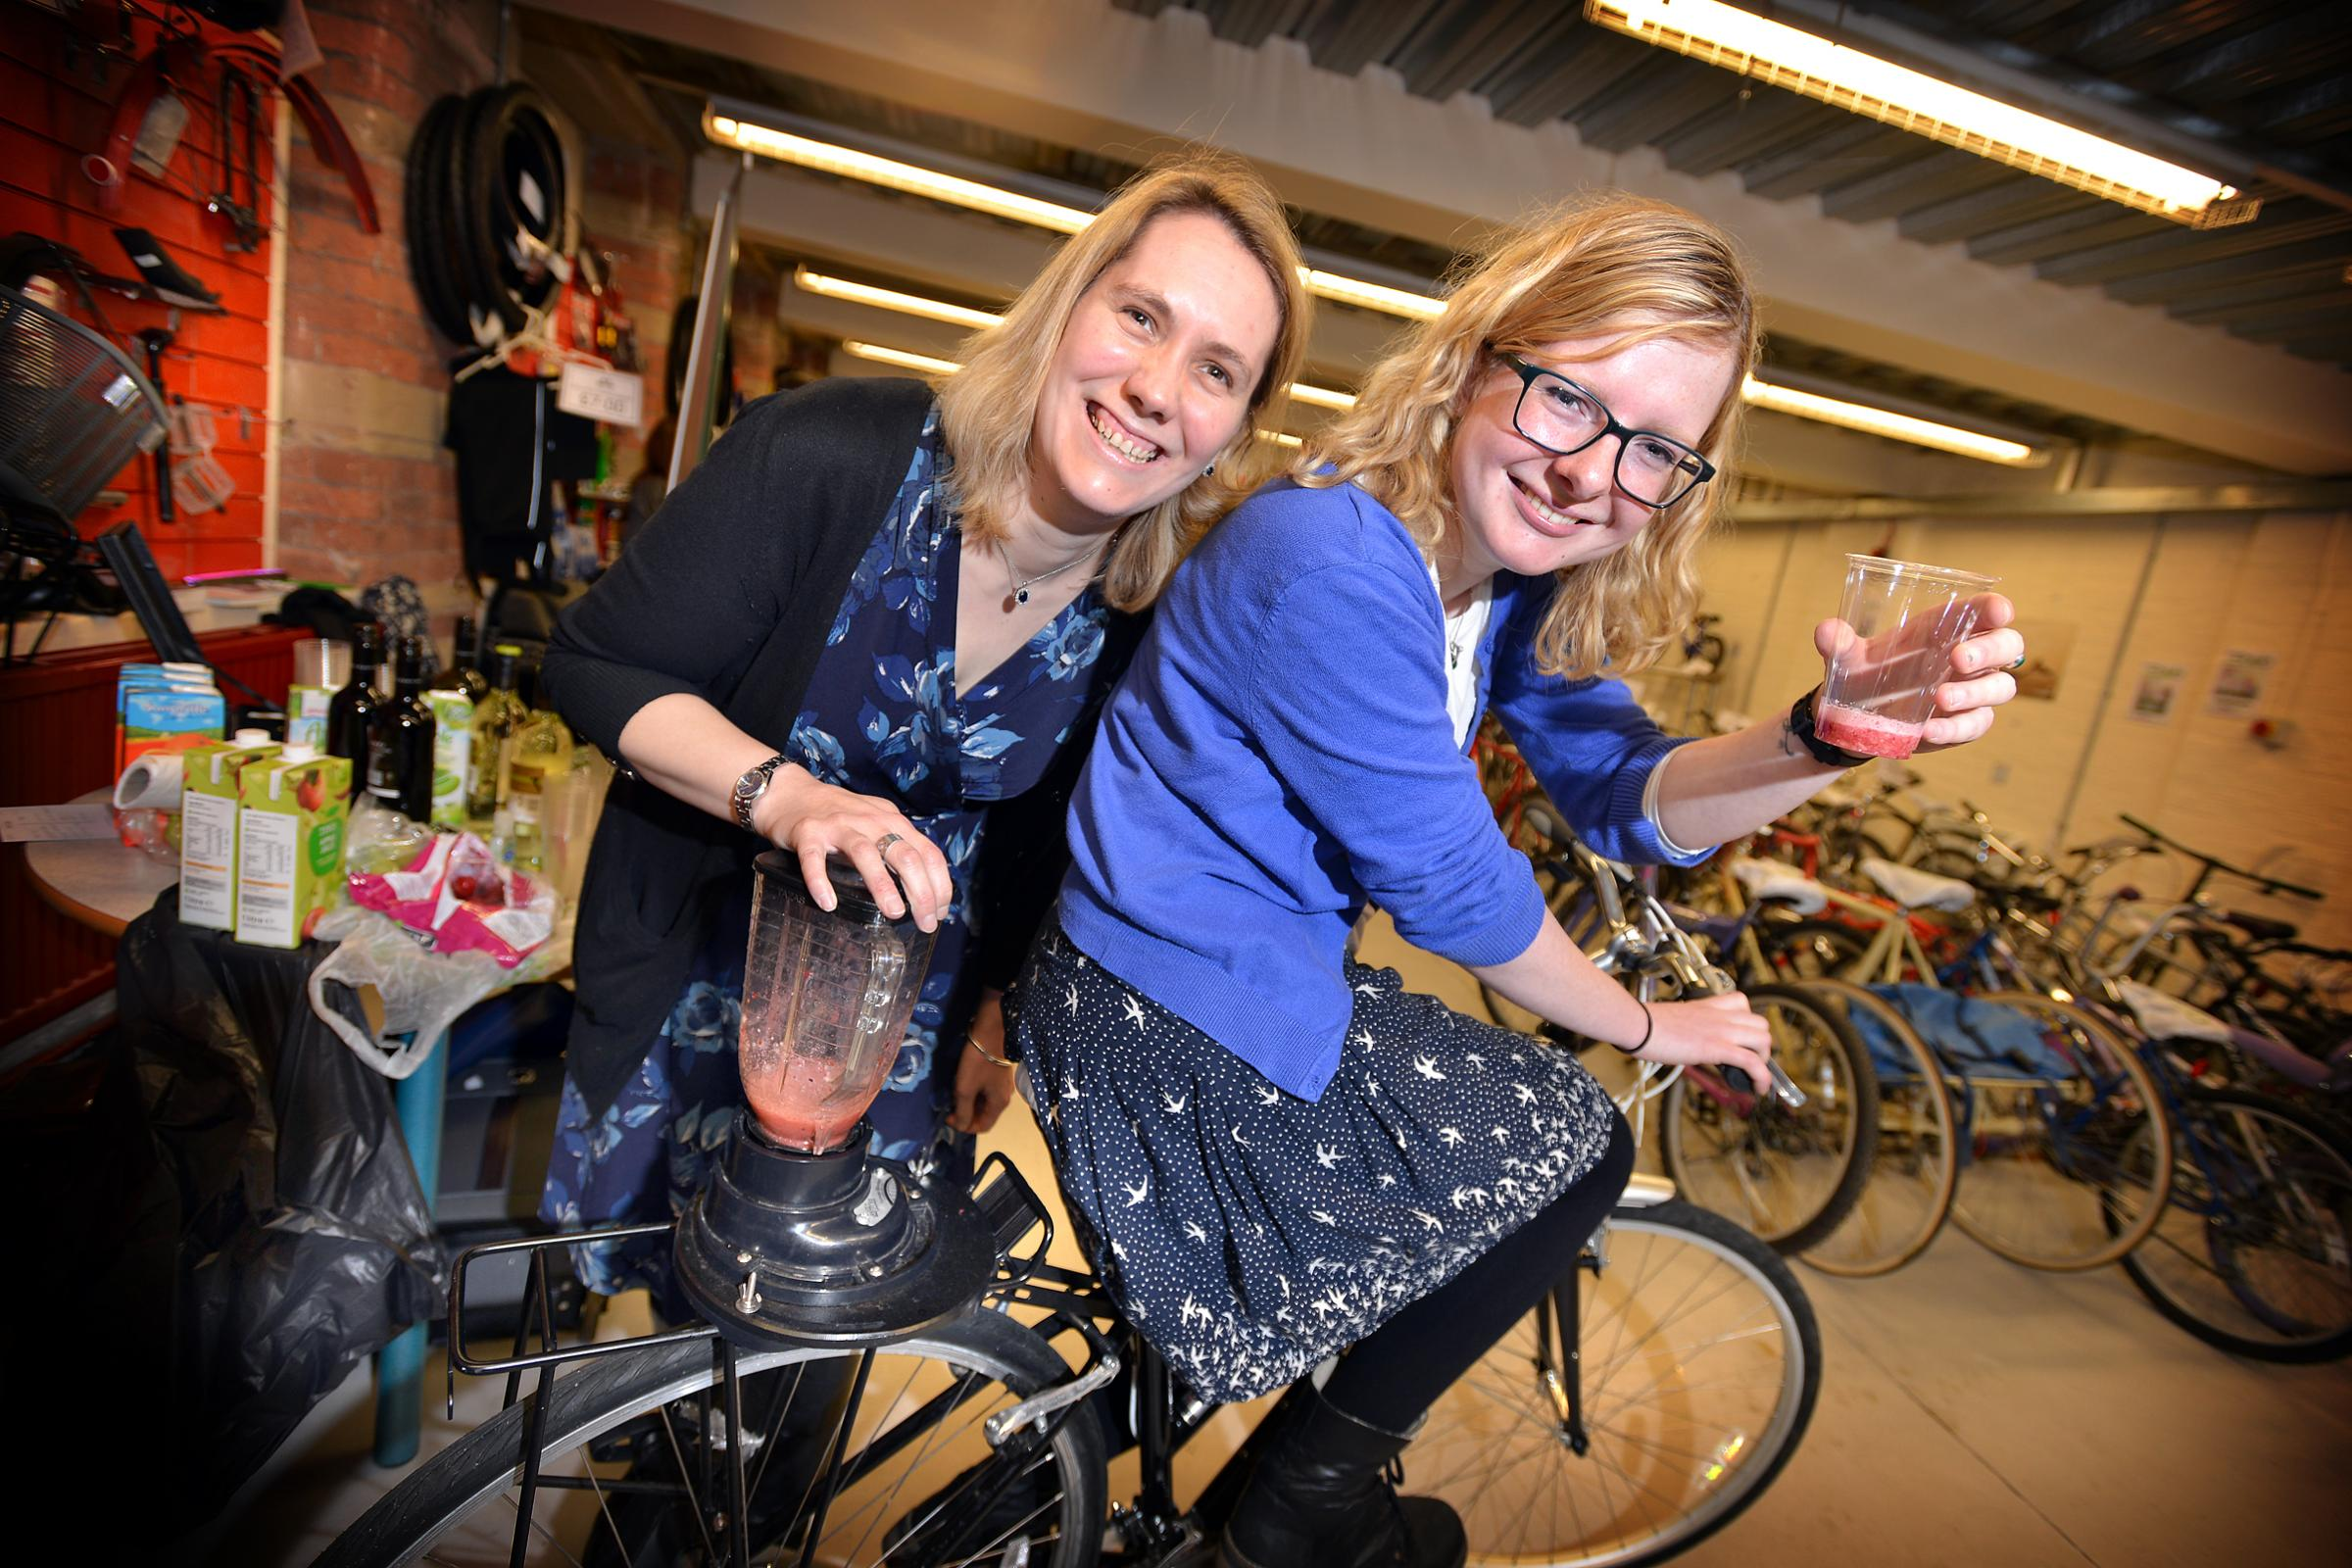 Joanna Ward (left) and Jennie O'Hara try the pedal-powered smoothie machine